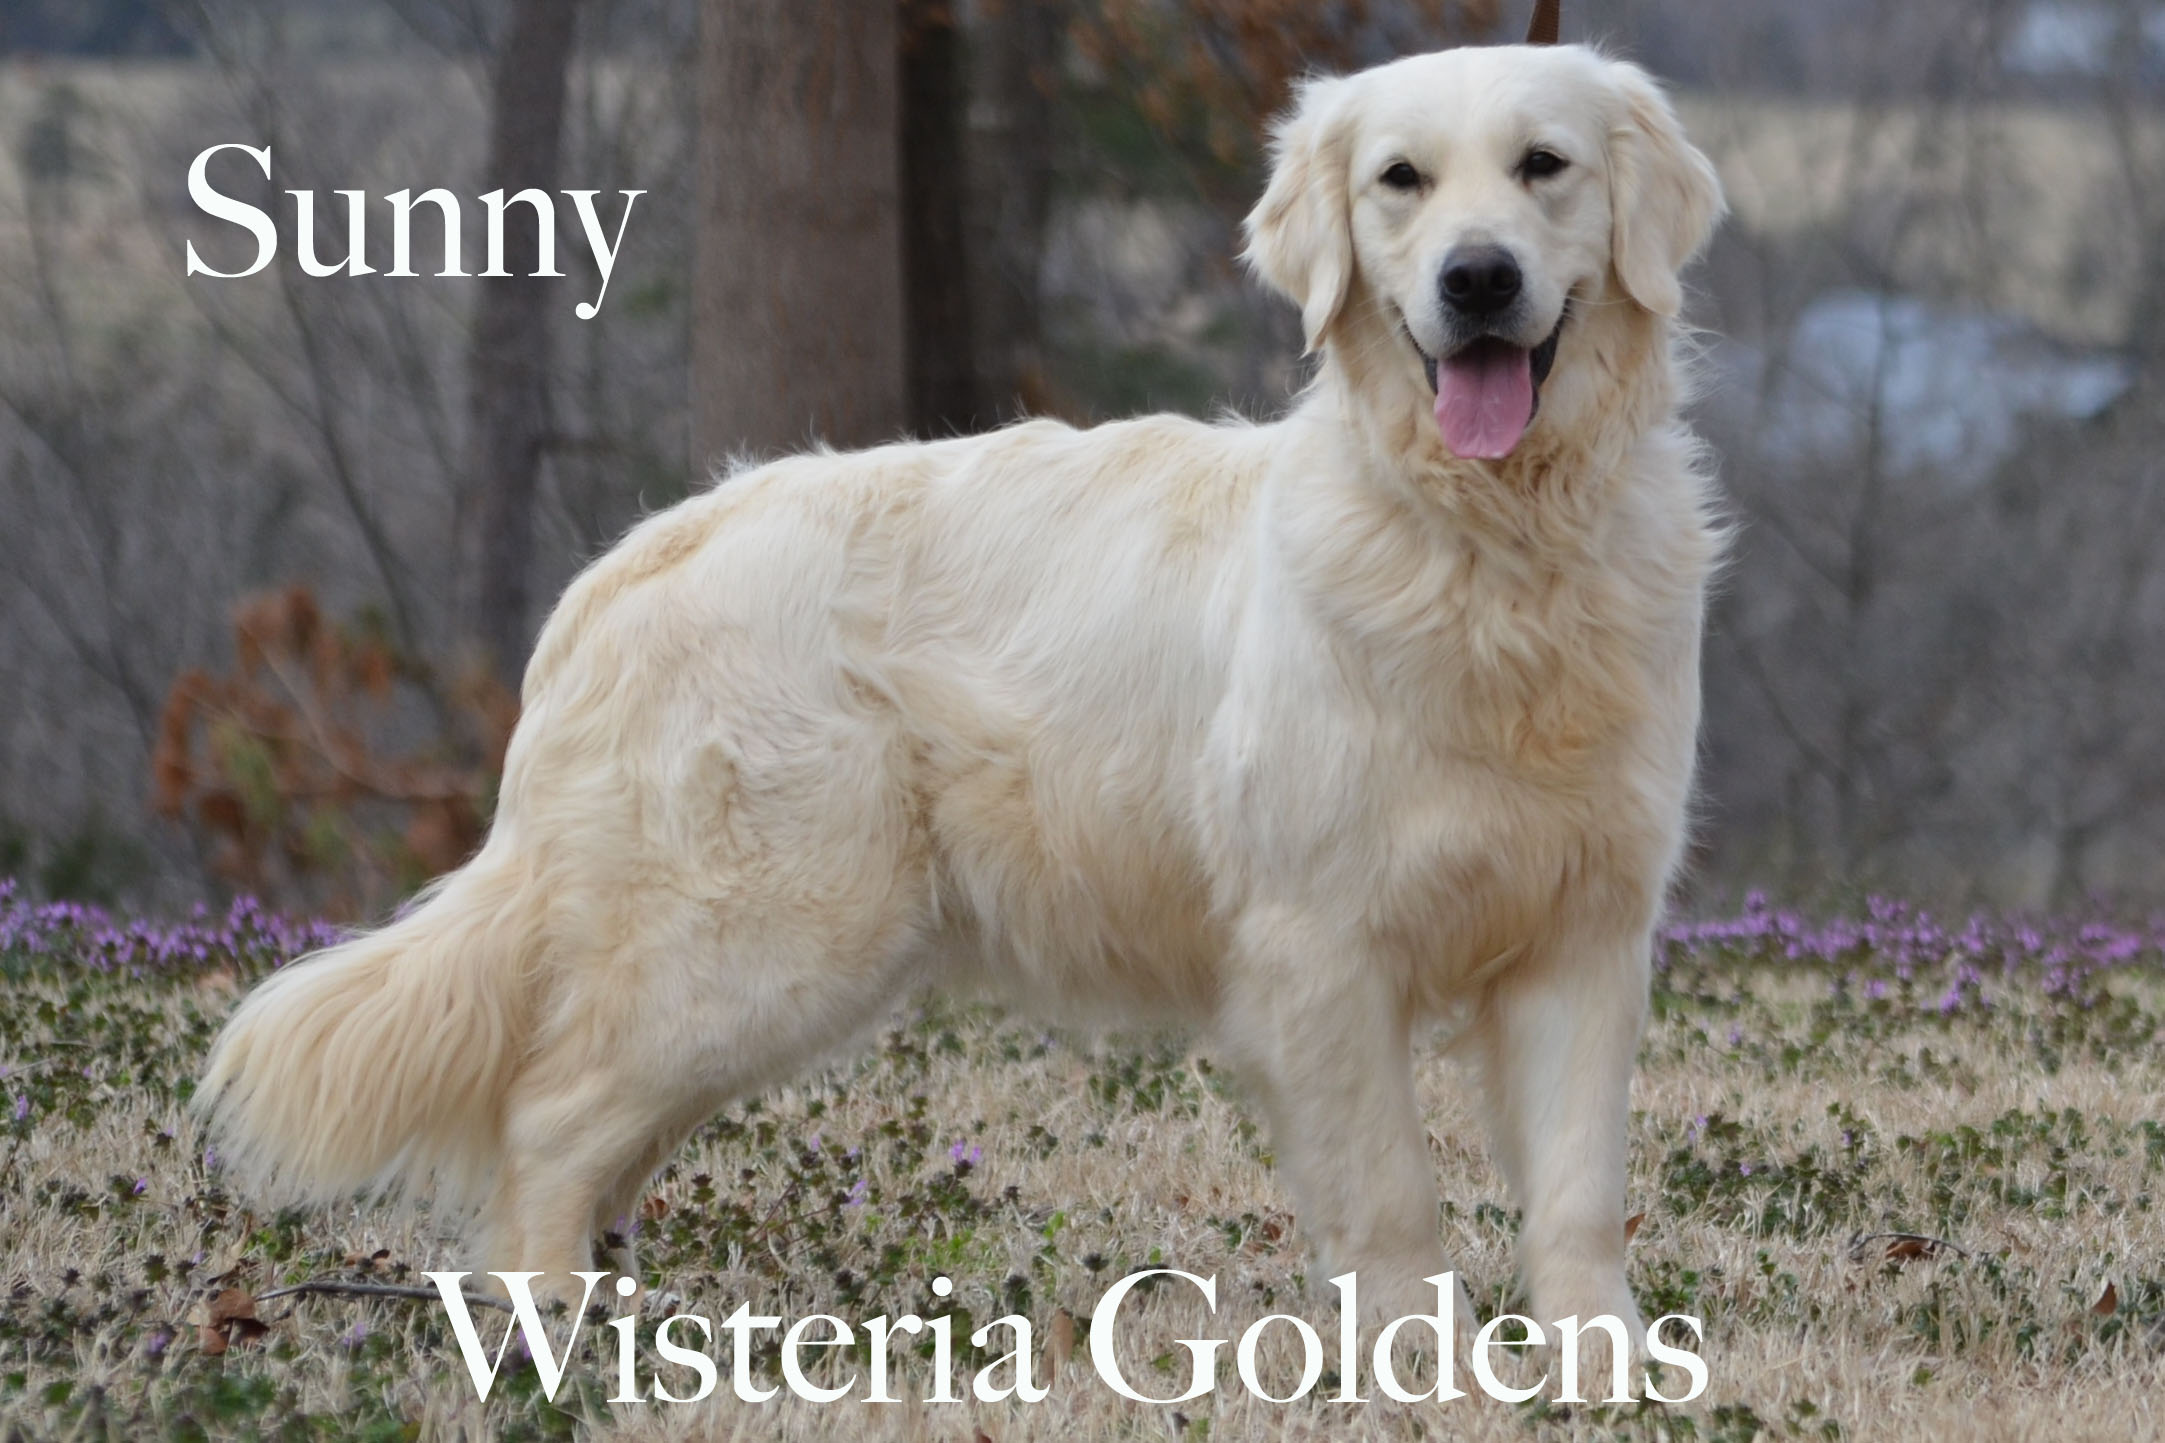 Sunny_0060-full-english-creme-golden-retriever-wisteria-goldens